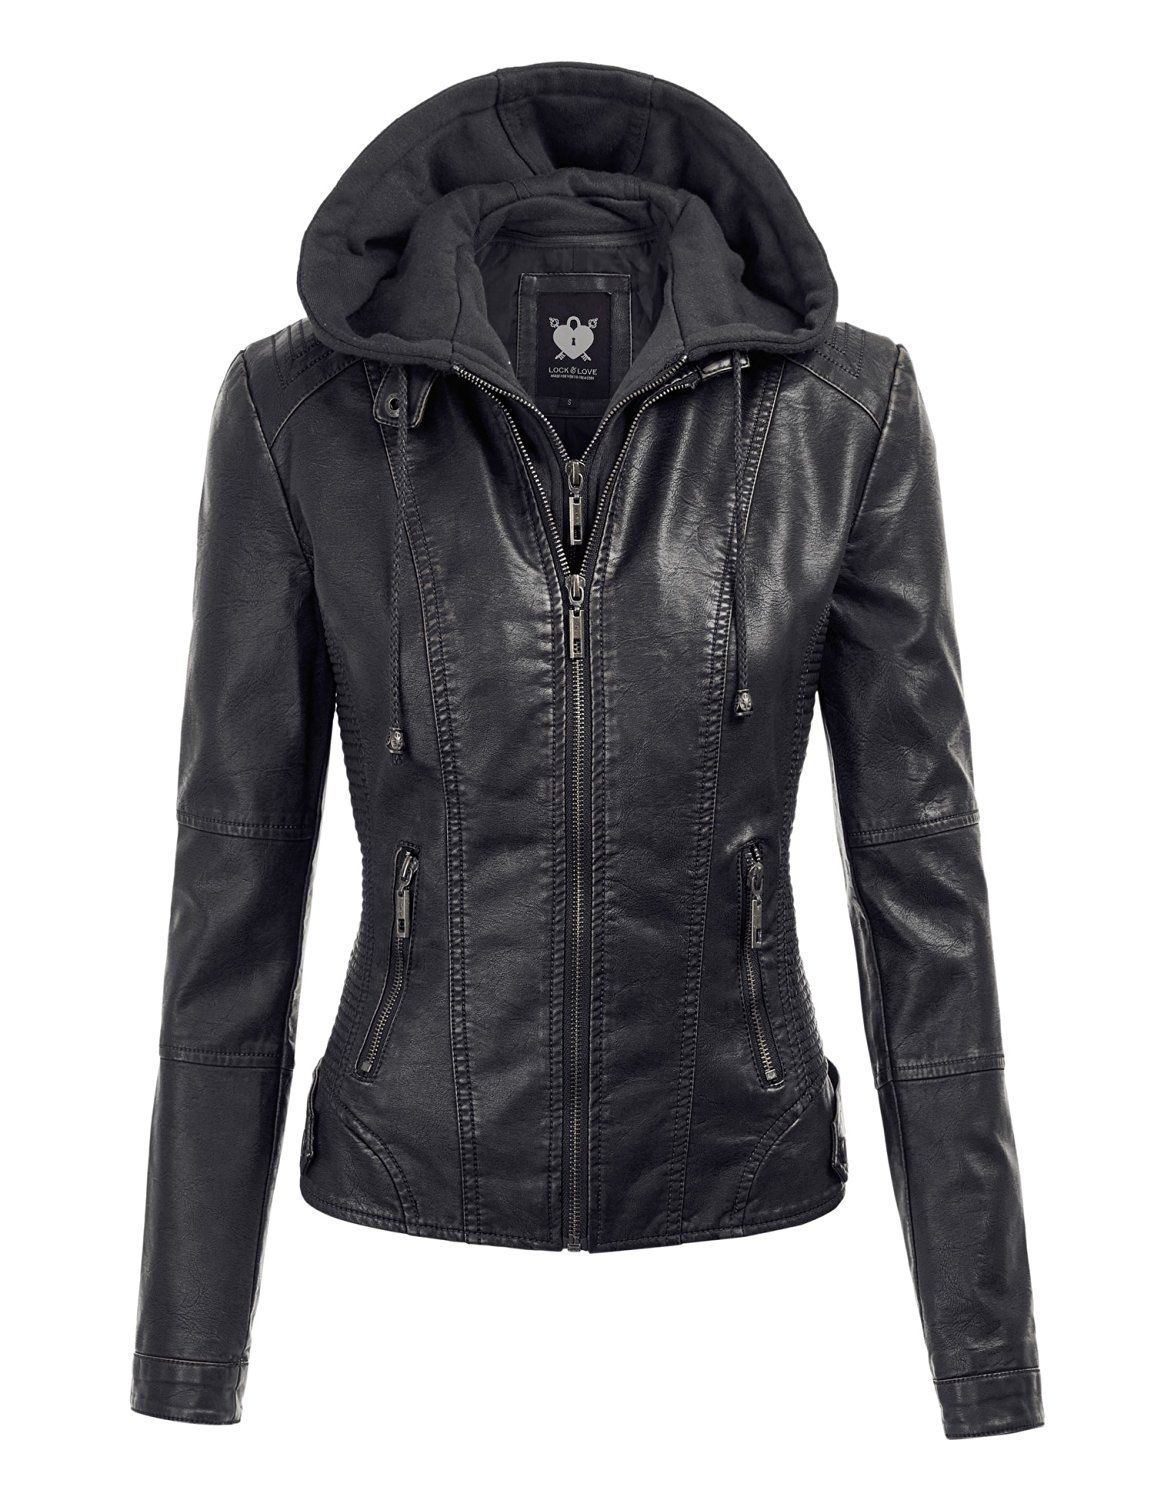 MBJ WJC1044 Womens Faux Leather Quilted Motorcycle Jacket